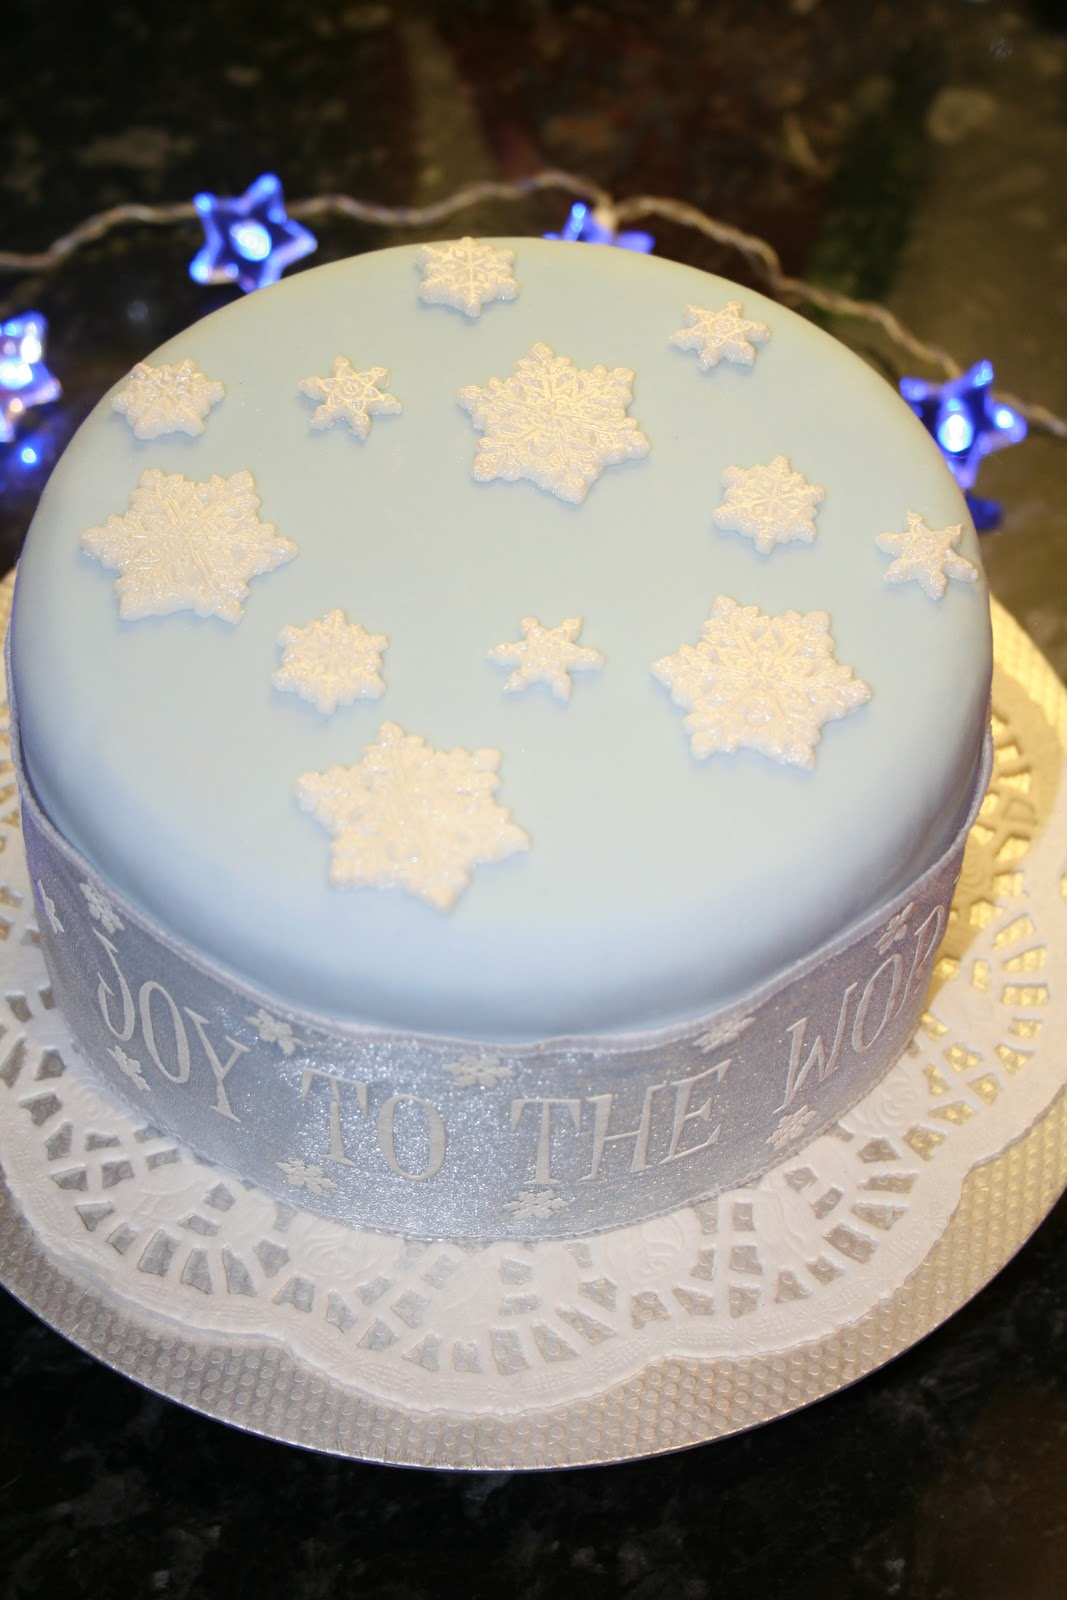 How to marzipan a christmas cake - 6 Family Sized Fruit Cake Approximately 12 16 Servings Covered With Marzipan And Pale Blue Fondant Icing With Individually Moulded Hand Painted